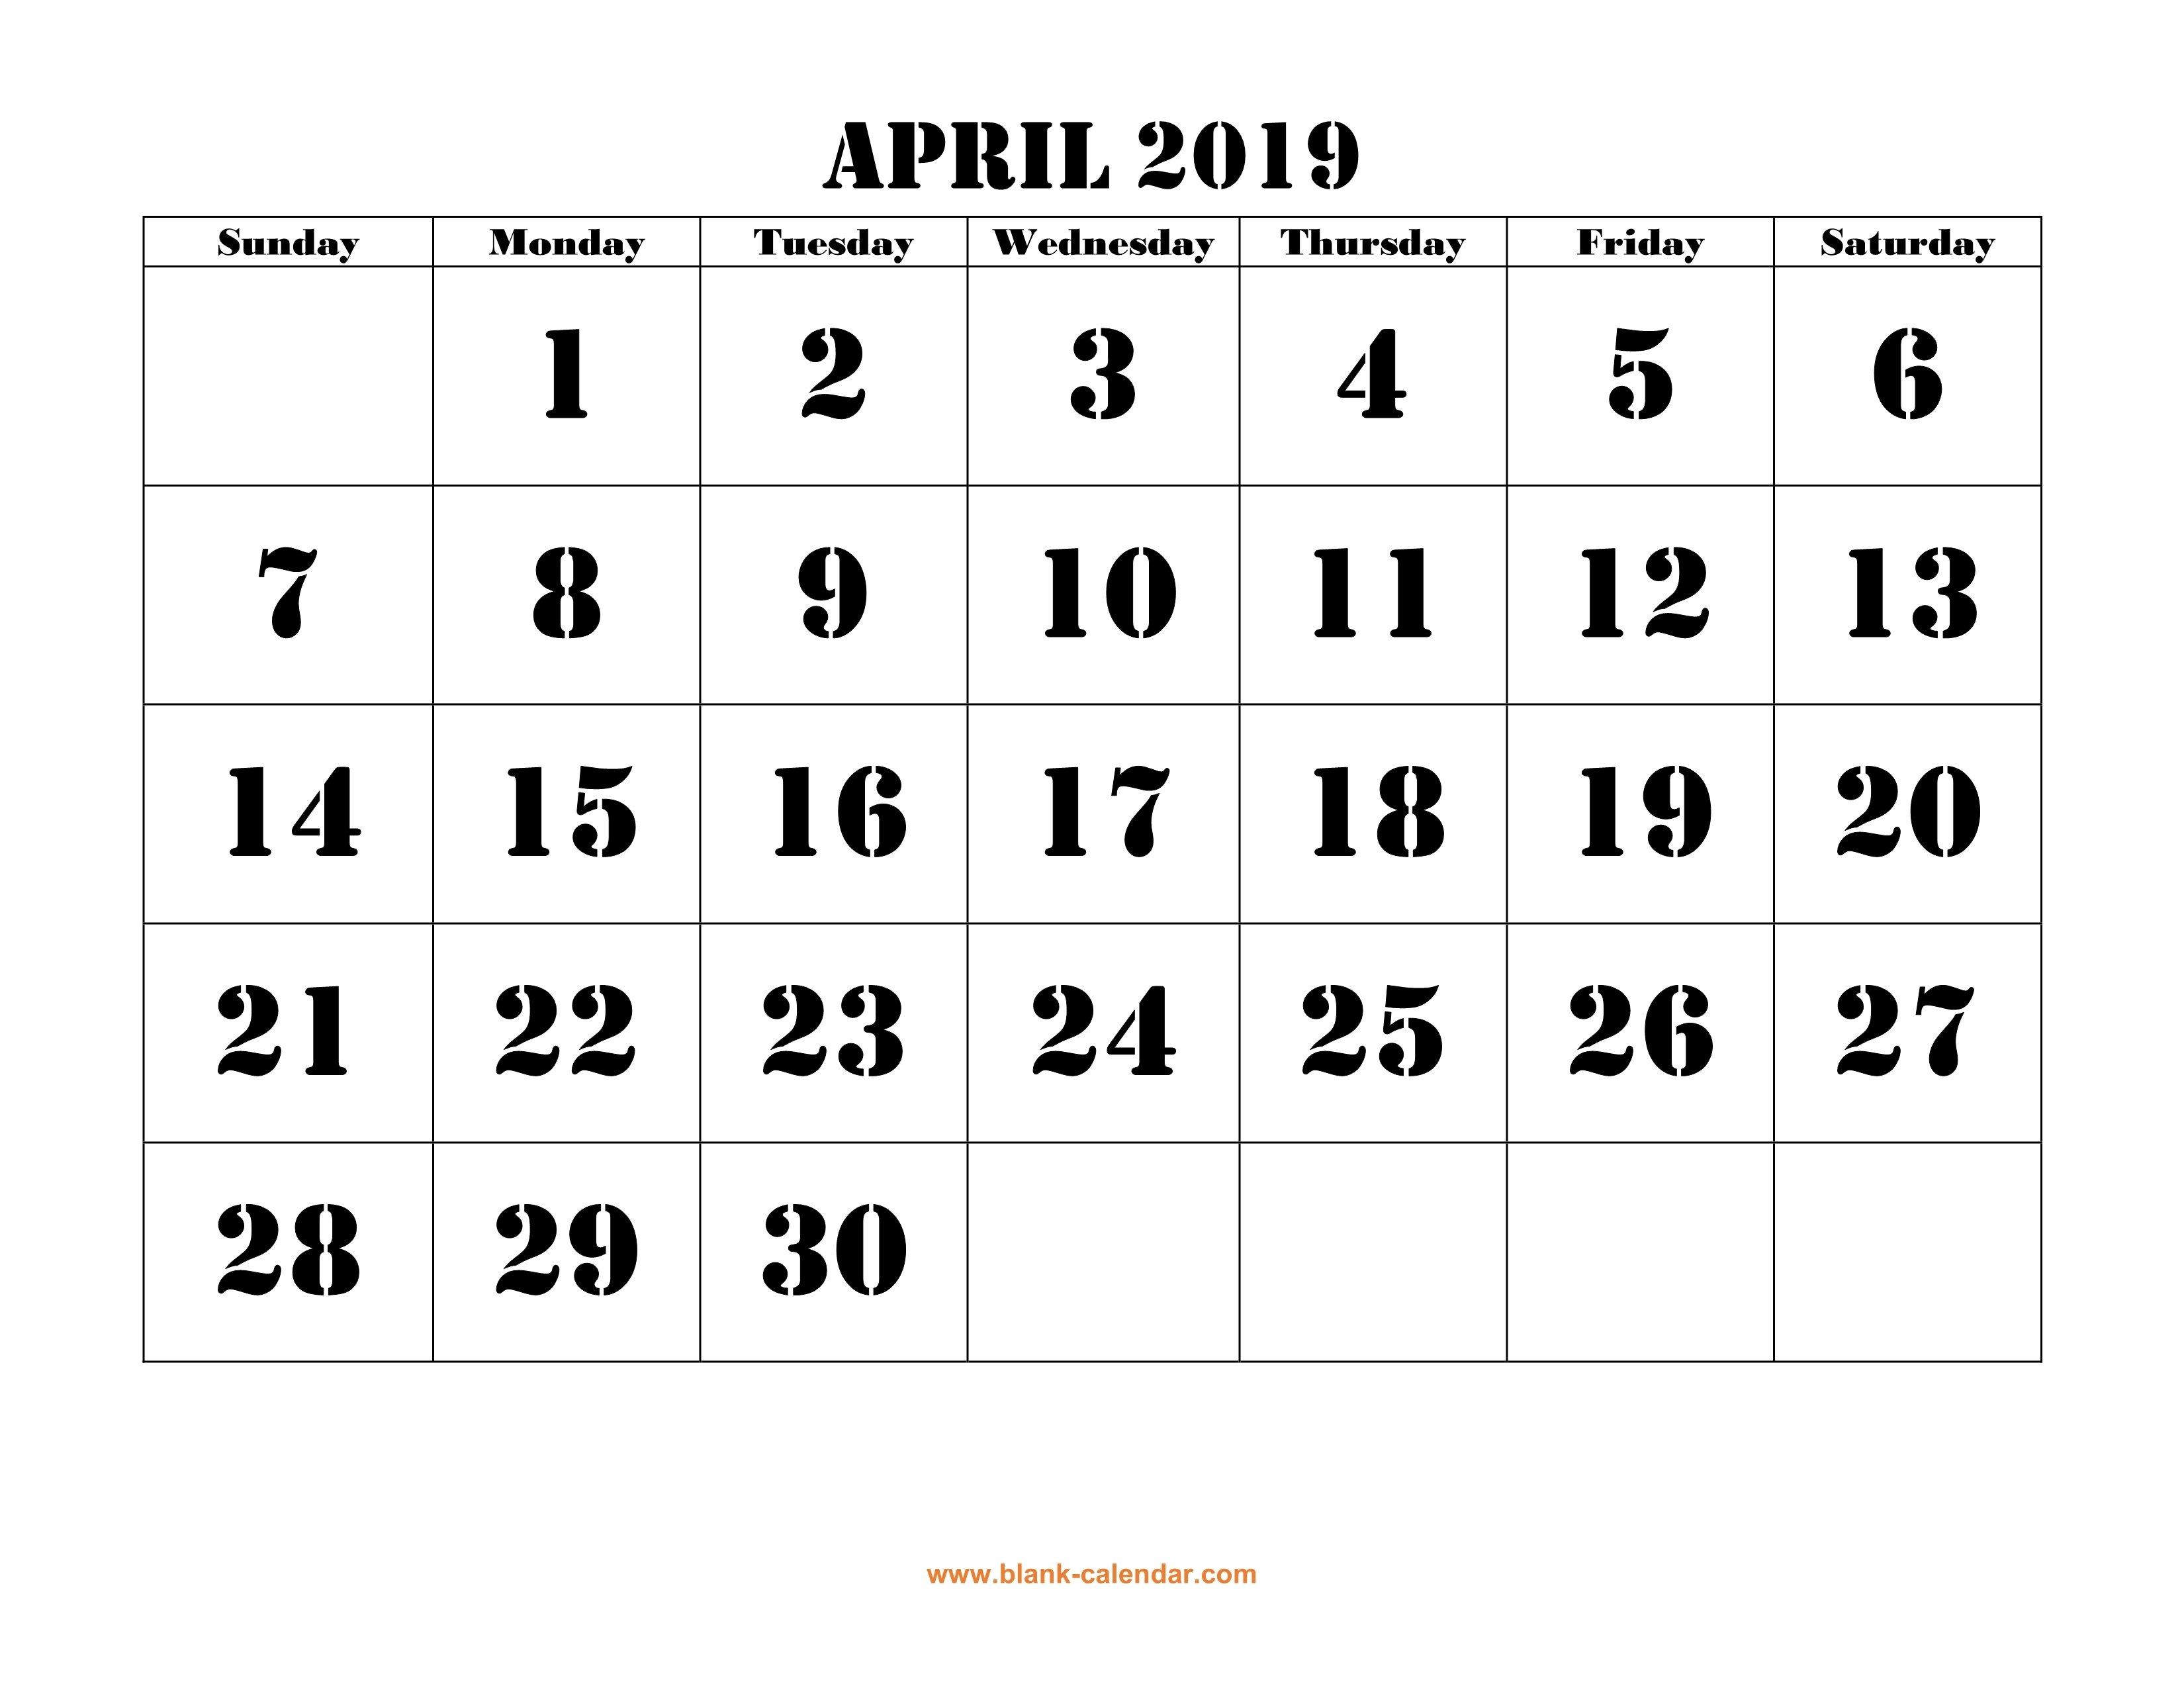 Free Download Printable April 2019 Calendar, Large Font Design April 9 2019 Calendar